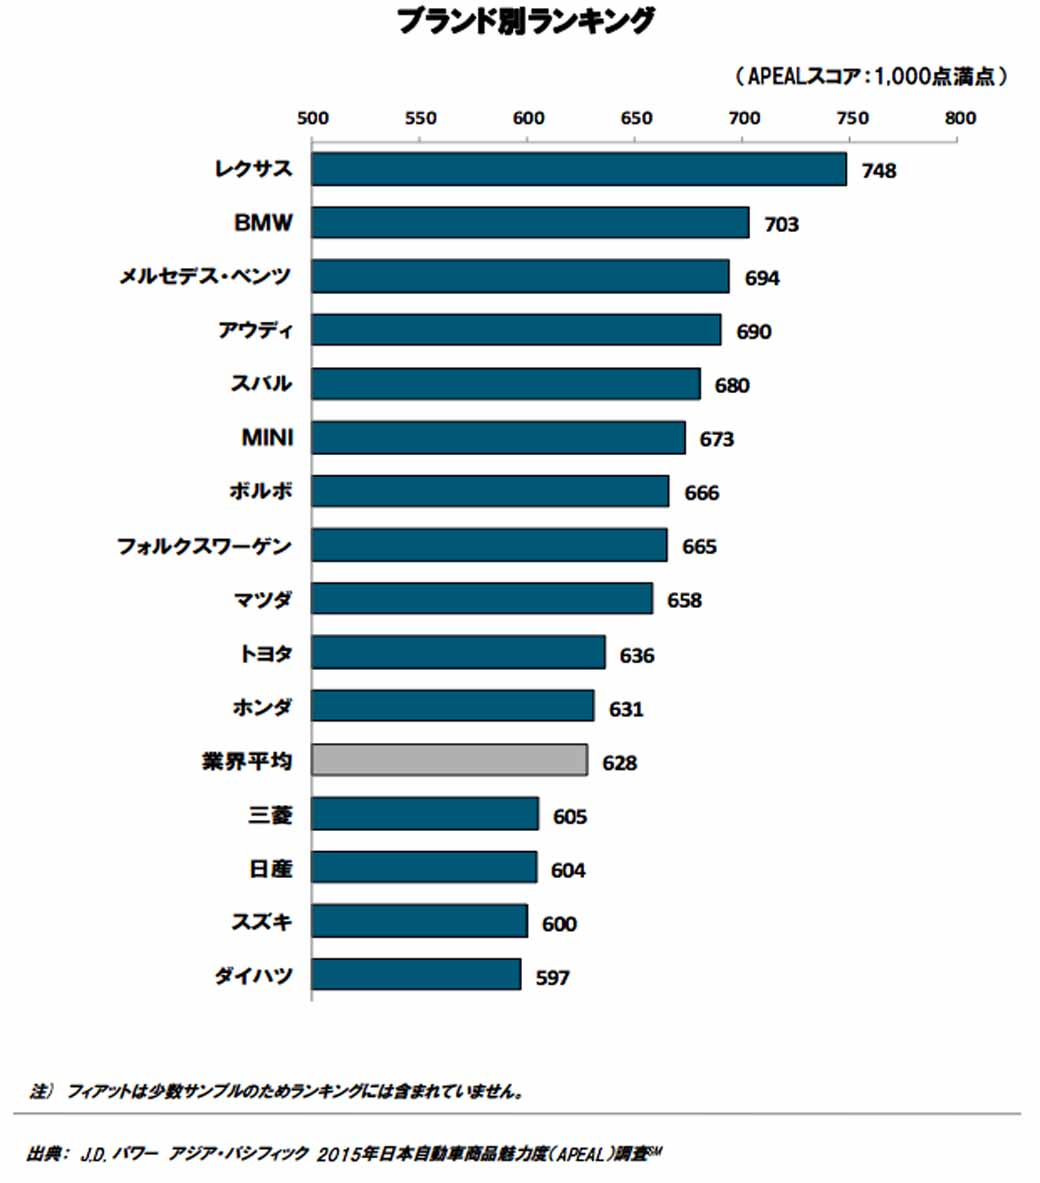 jd-power-the-japan-automobile-commodity-attractiveness-年-2015-apeal-survey-results-announced20150928-2